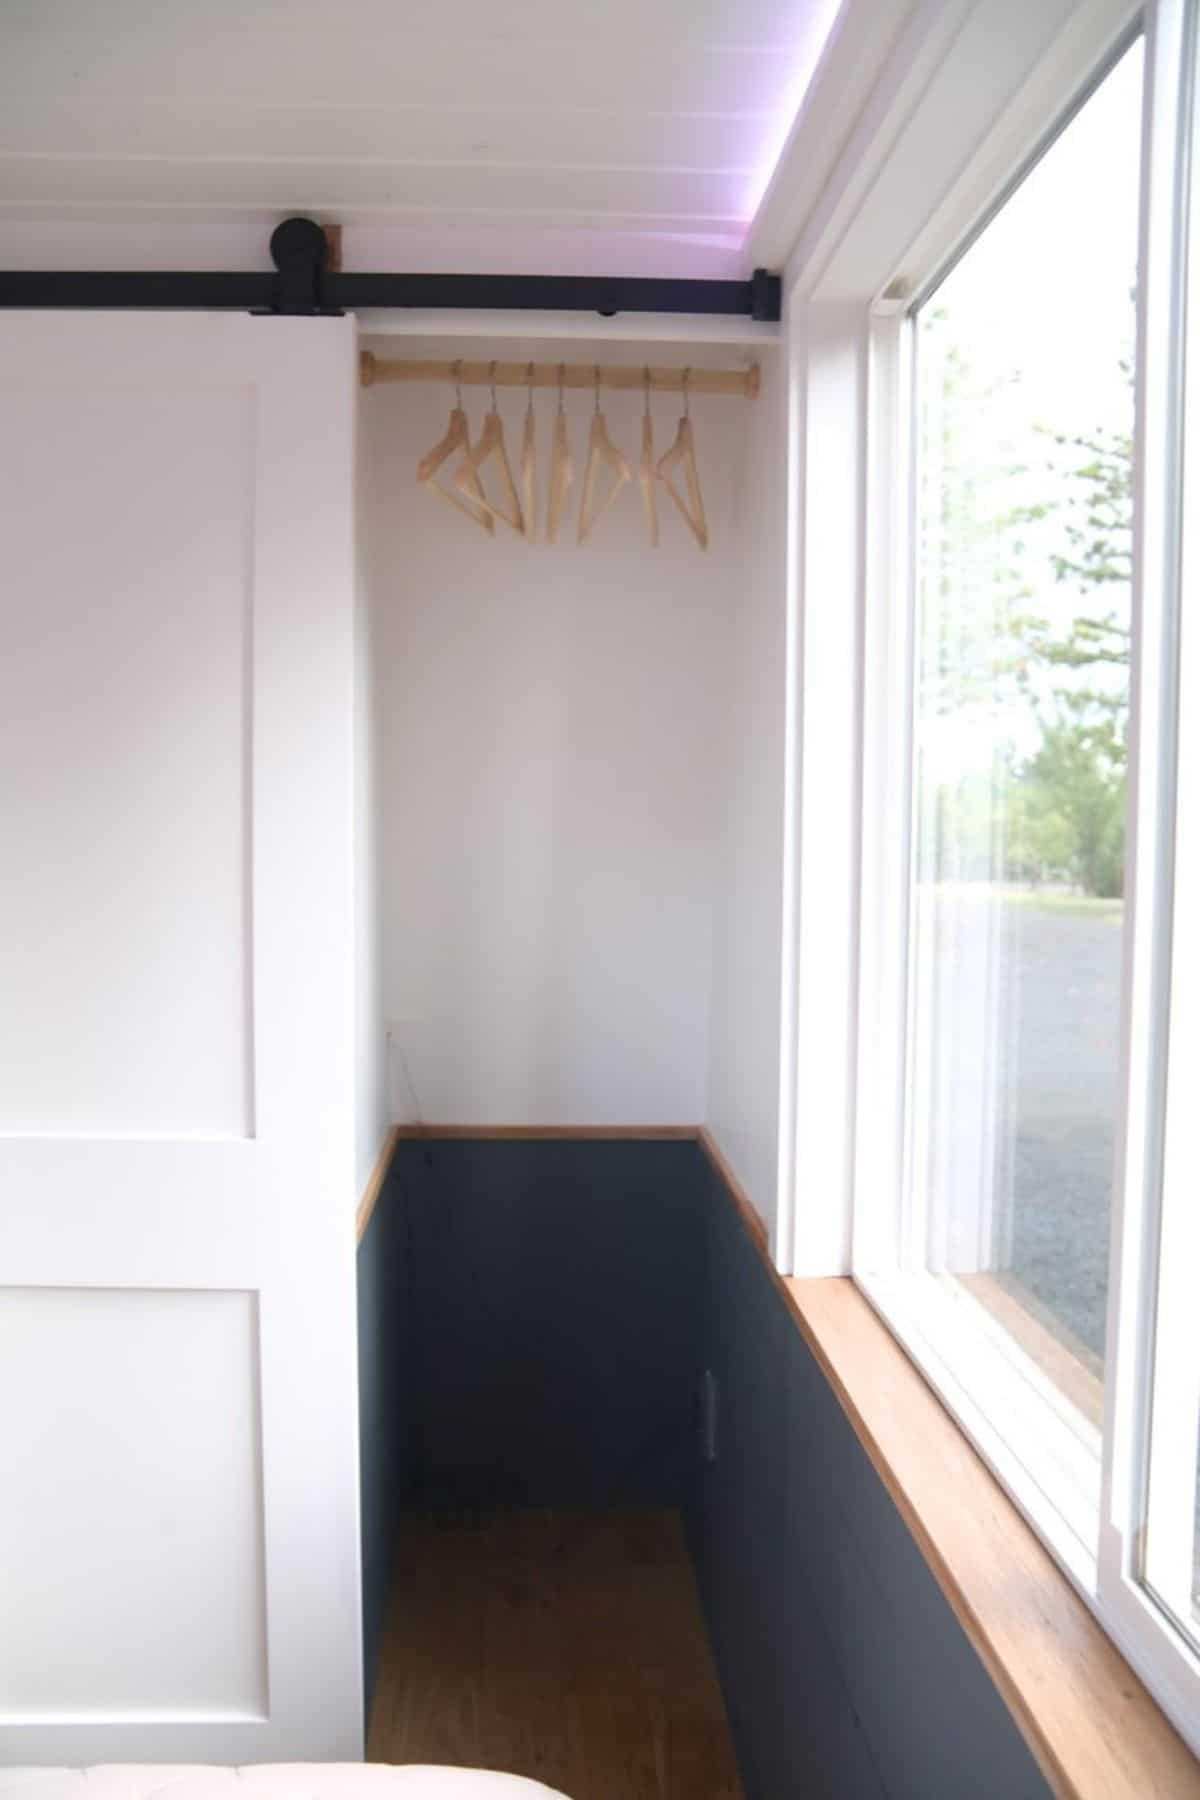 view into closet with hangers on rod